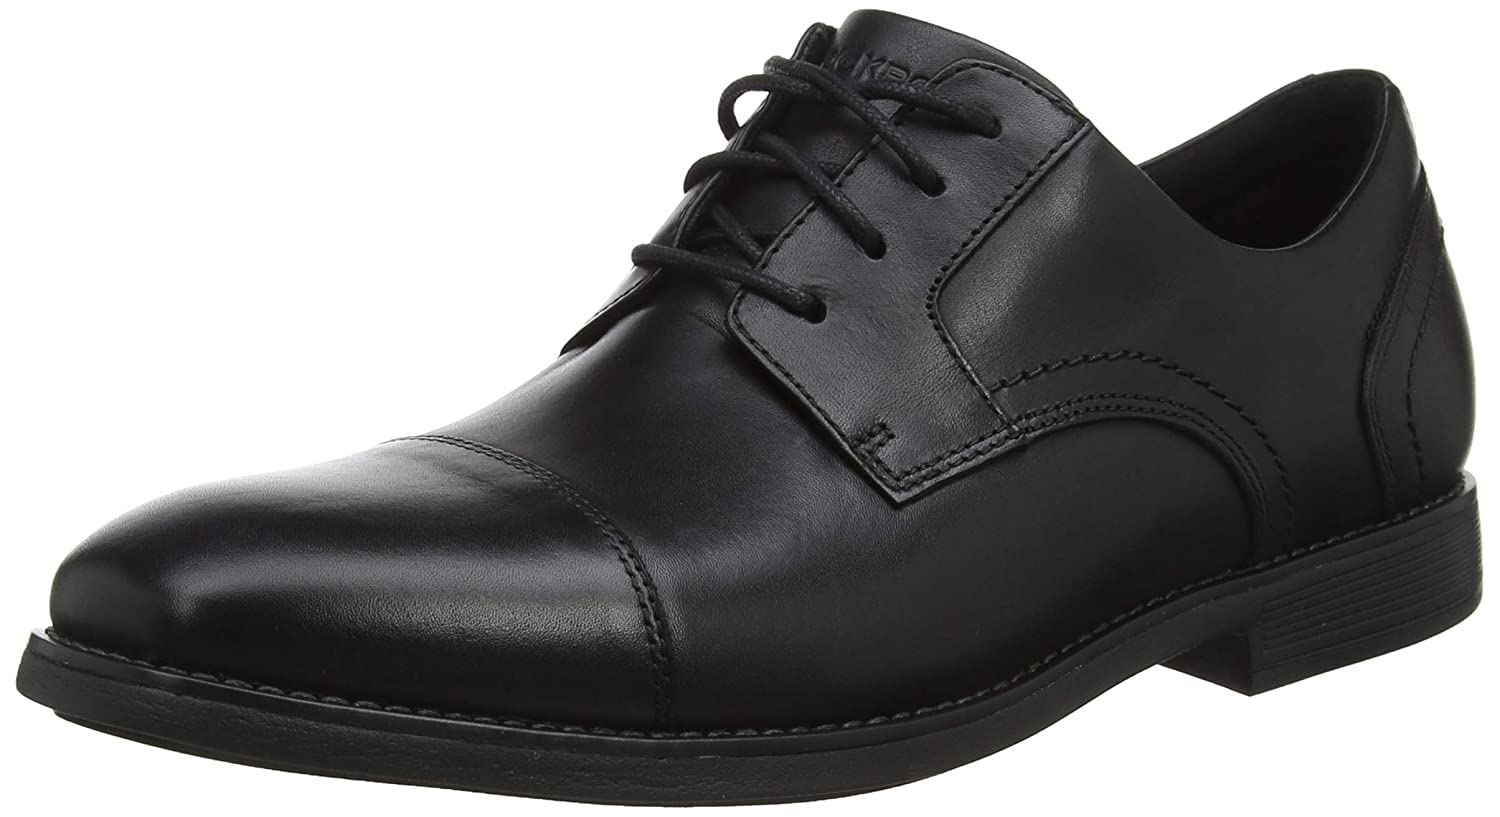 Rockport Slayter Cap Blucher Black, Zapatos de Cordones Oxford para Hombre